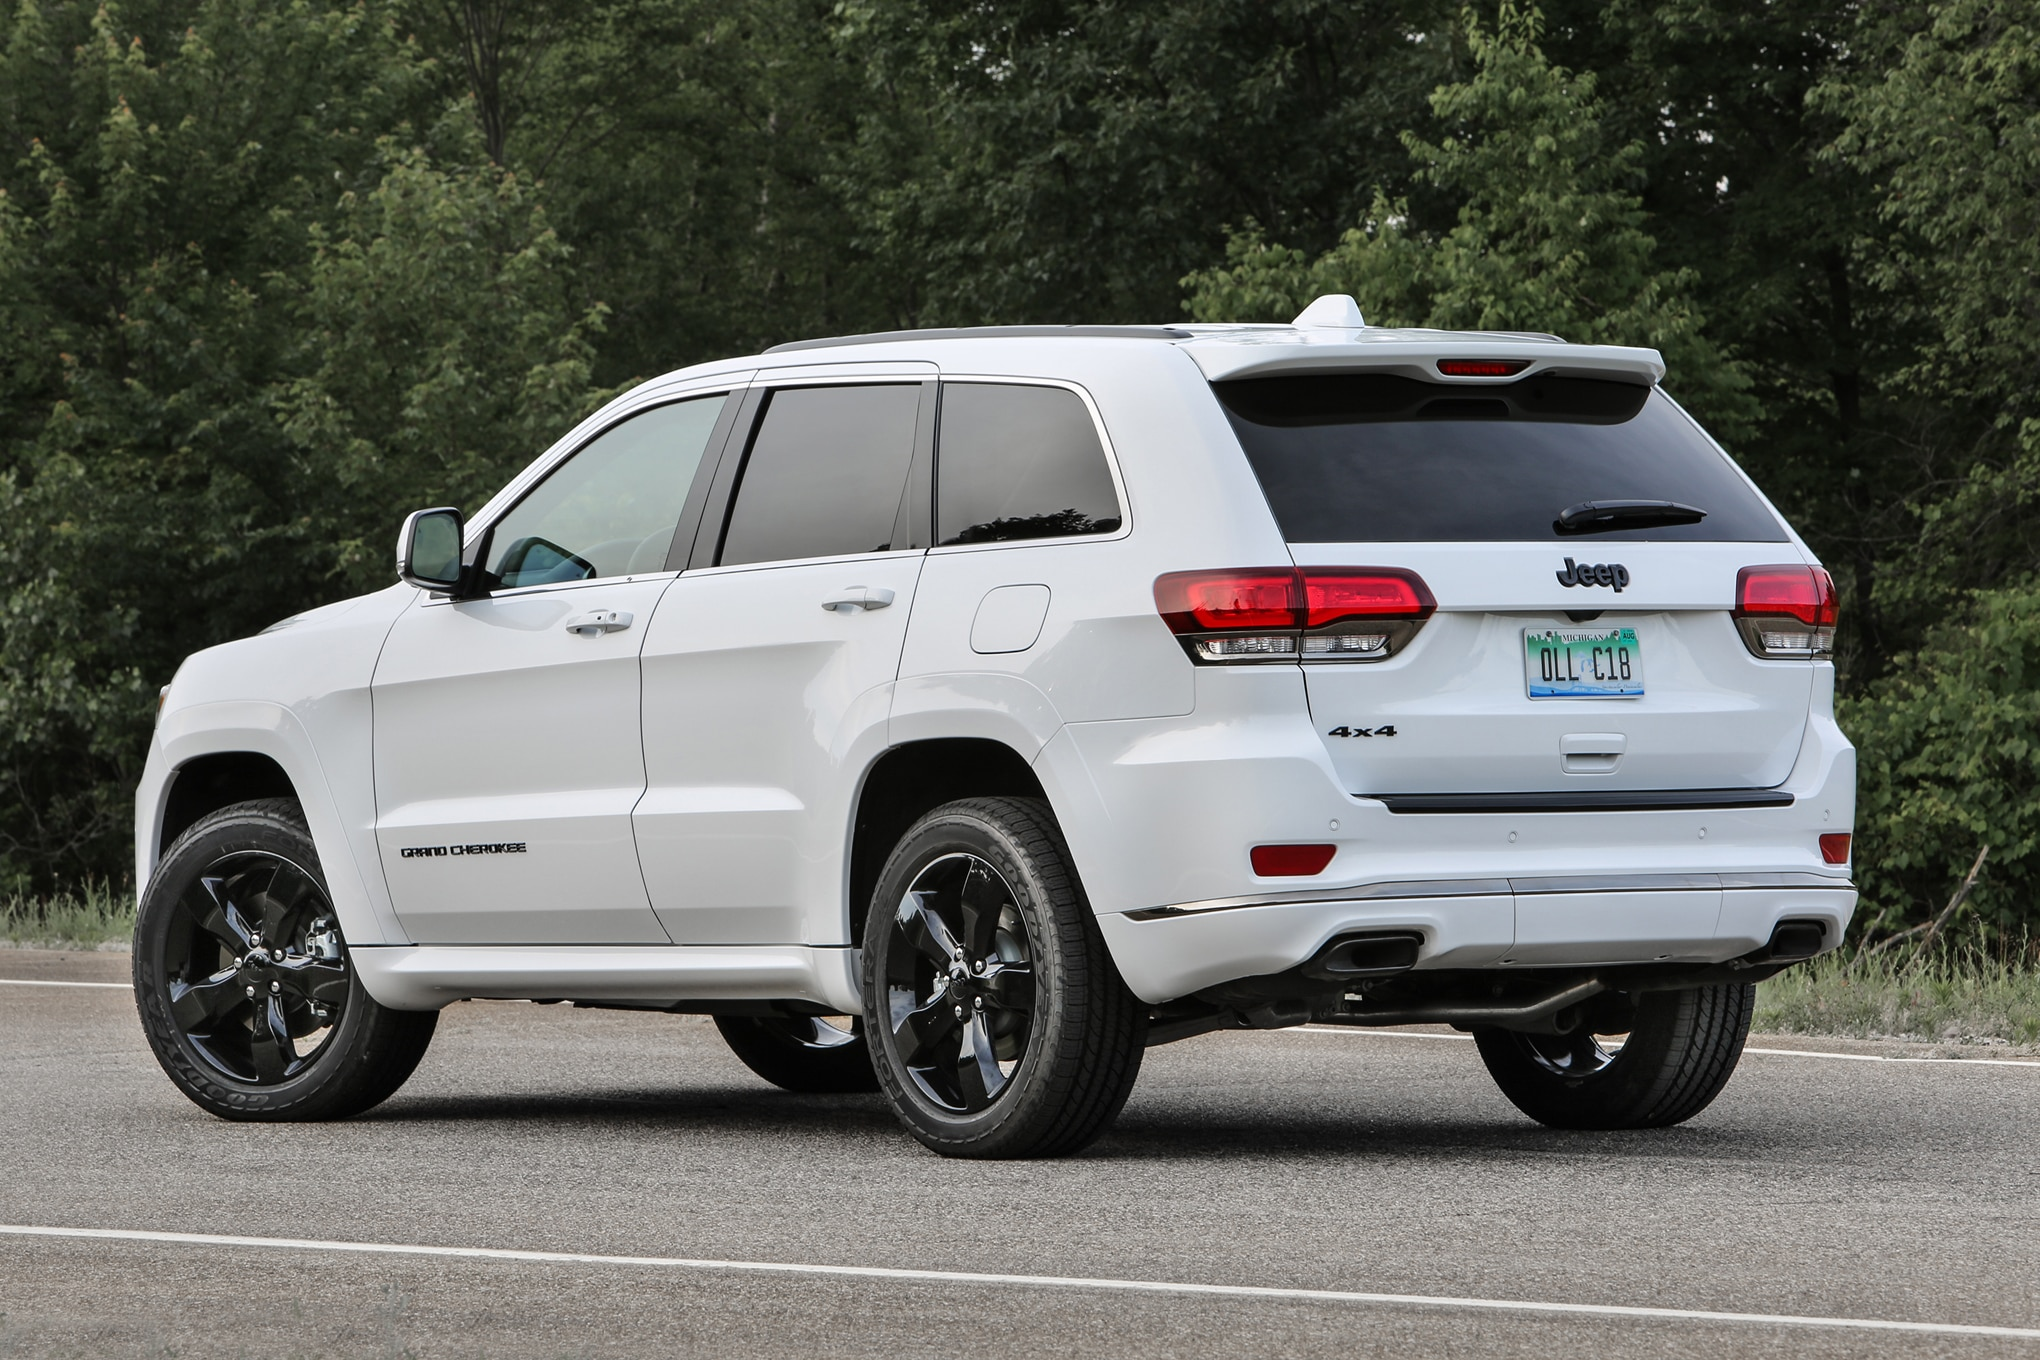 2016 jeep grand cherokee improves mpg  adds engine stop